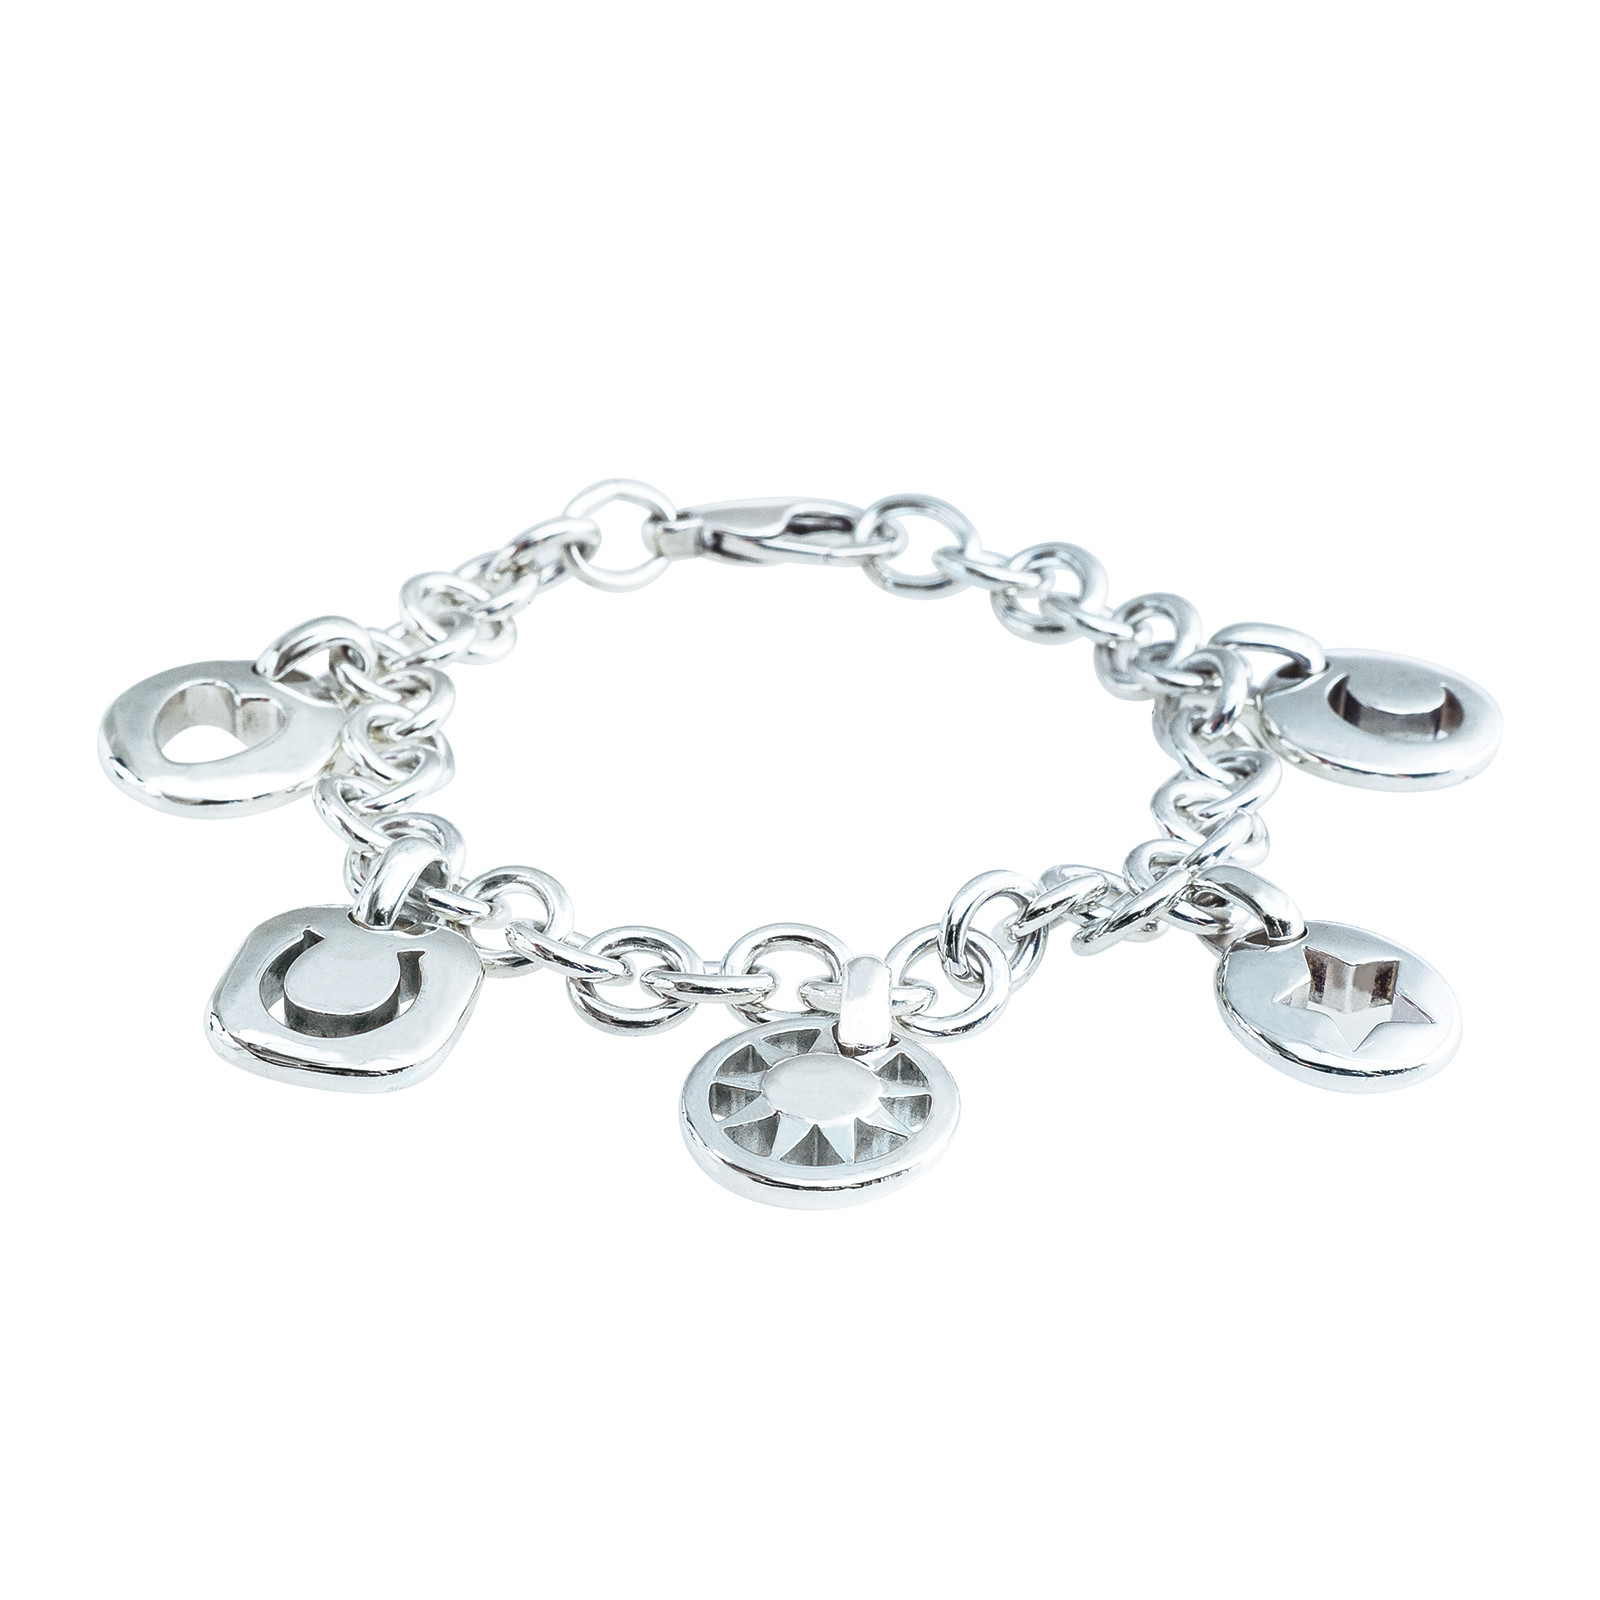 Vintage Tiffany & Co. Charm Bracelet